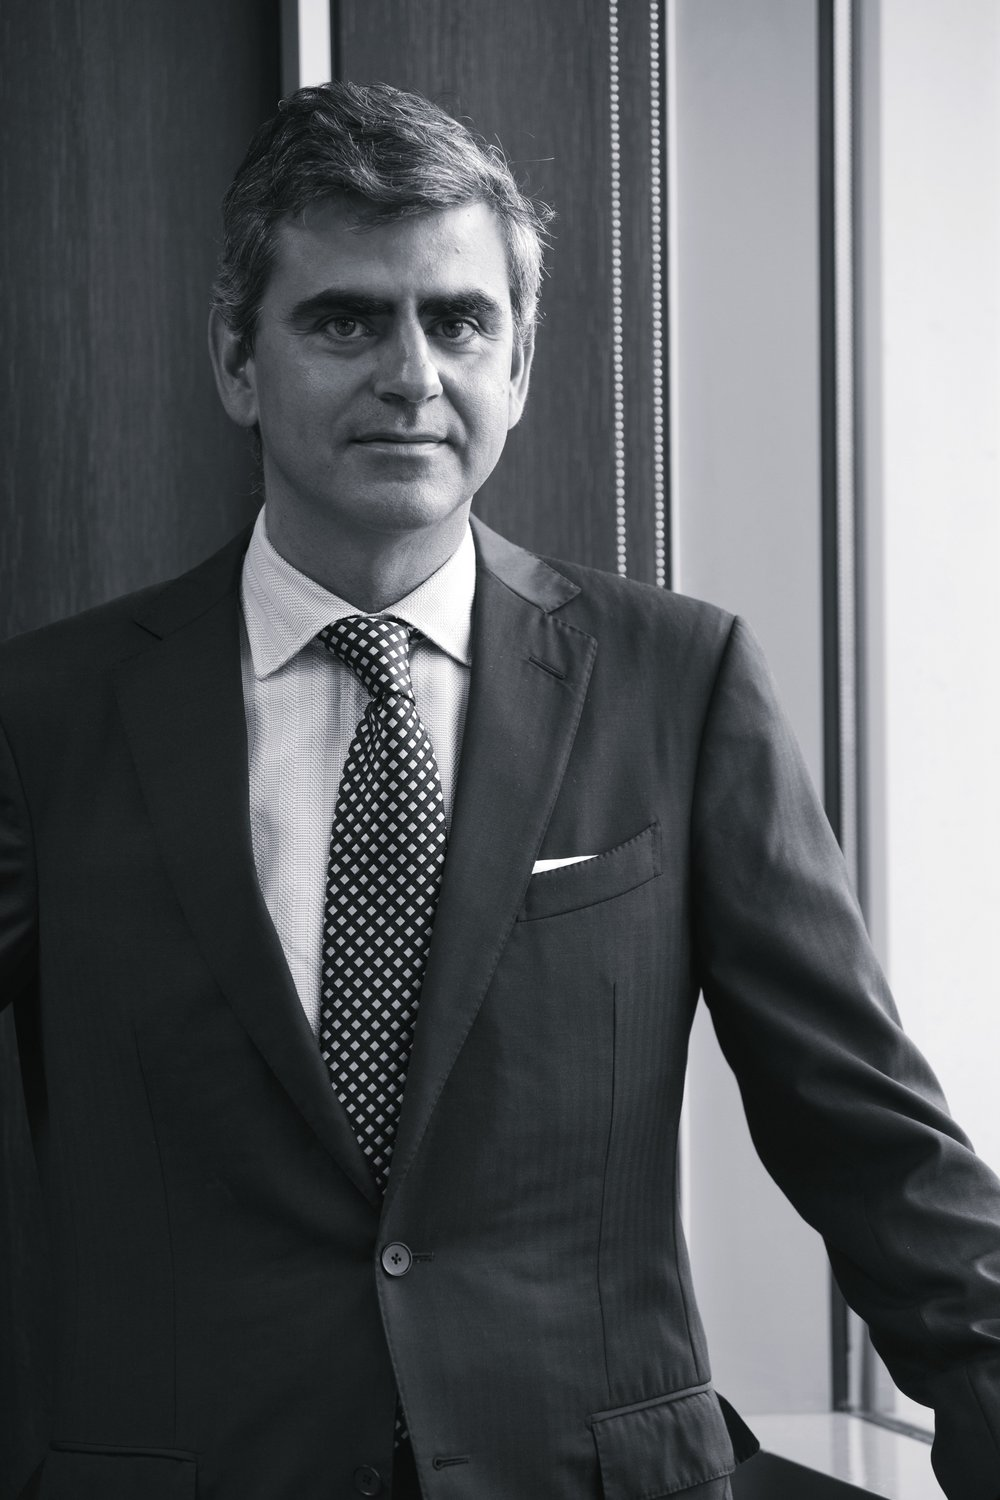 Juan Cruz - CIO, Founding Partner & Member of the Board of DirectorsJuan is responsible for Investments. He has ample experience in the management of proprietary portfolios of financial institutions, as well as in hedge fund management, specializing in the utilities, infrastructure and renewables sector. Between 2000 and 2005, Juan was one of the founding partners of BBVA & Partners, a Madrid based hedge fund, where he was responsible for investments in the utilities sector, among other things. Juan has been involved in long/short equity and/or proprietary trading for more than 20 years, being associated with Argentaria (a company that merged into BBVA in 2000) from 1994 through 1999 and with Santander from 1999 through 2000, two of the largest financial institutions of Spain. Juan holds a B.Sc. in Economics from CUNEF, Madrid.